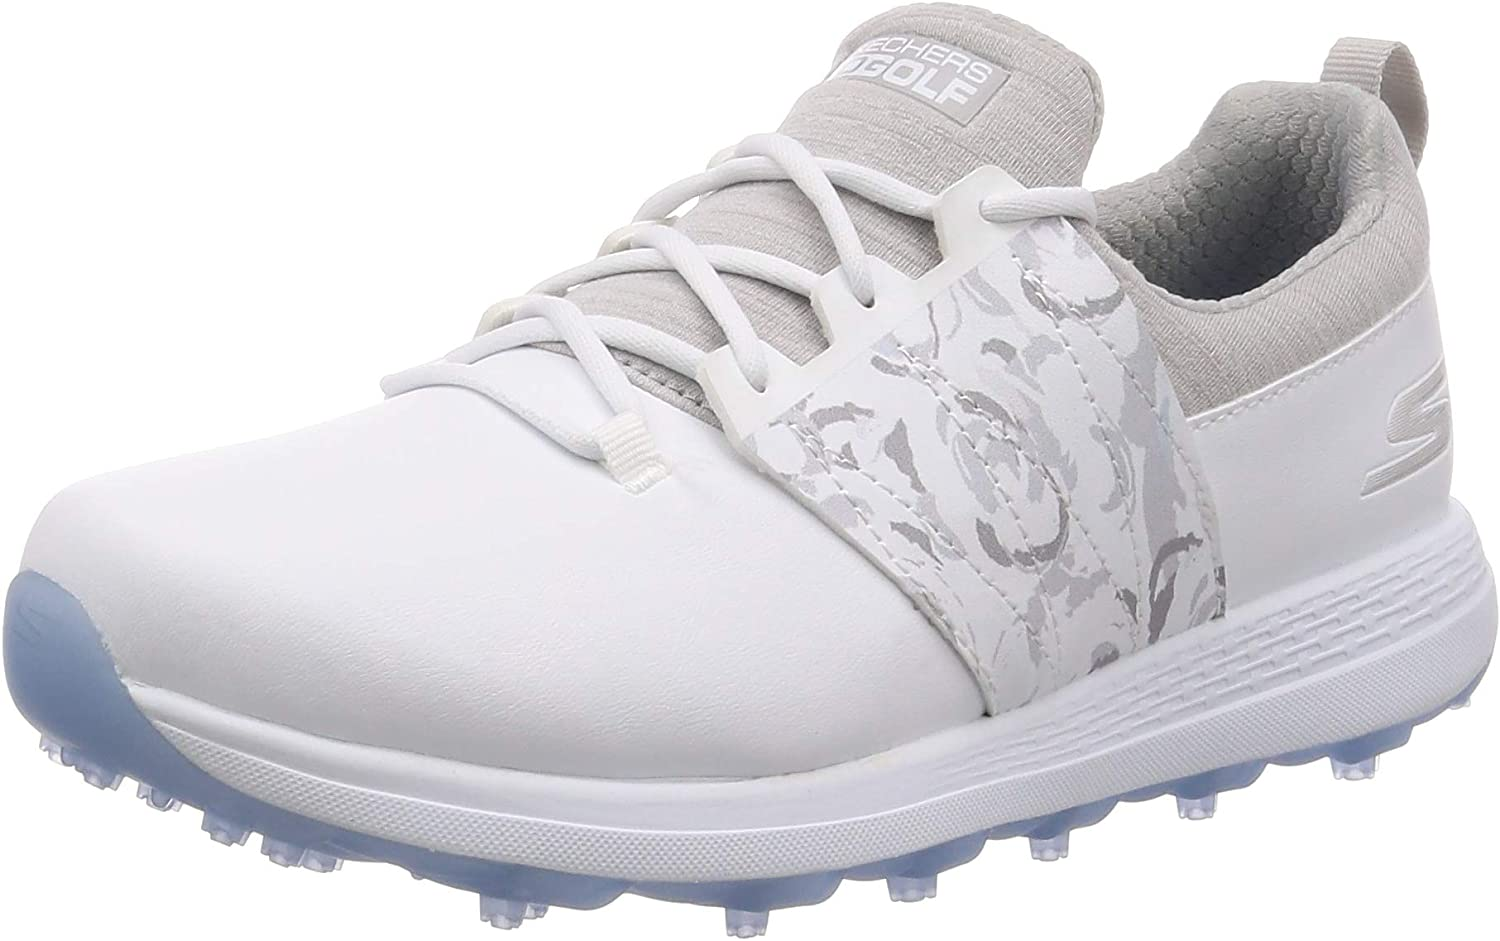 Skechers Ranking integrated 1st place Women's Go Department store Golf Shoe Honey Max